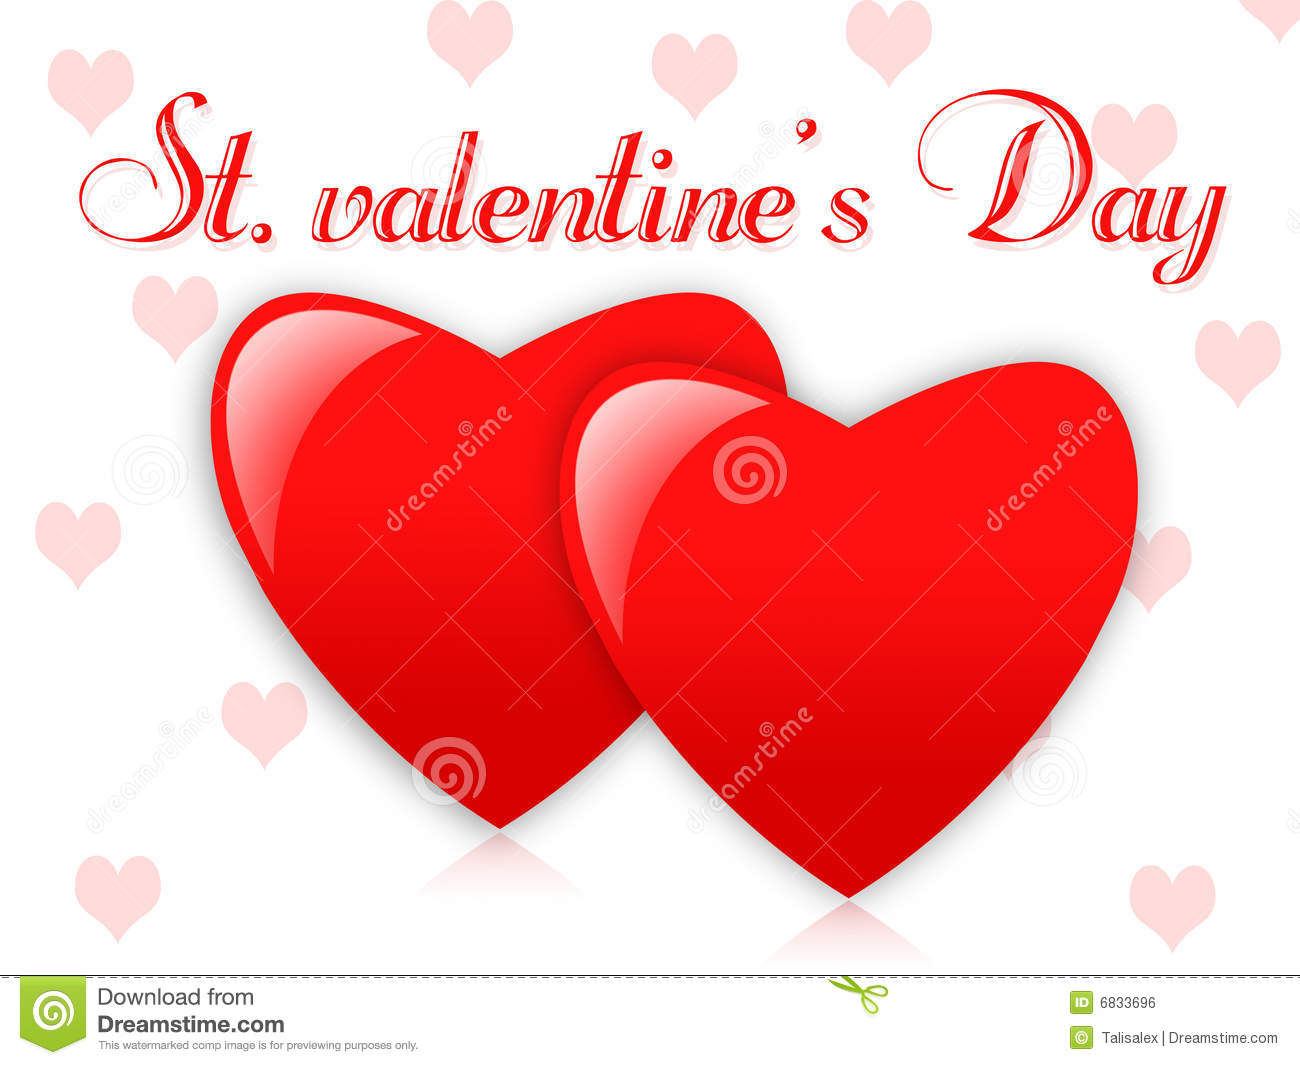 st valentine 39 s day clipart clipart suggest